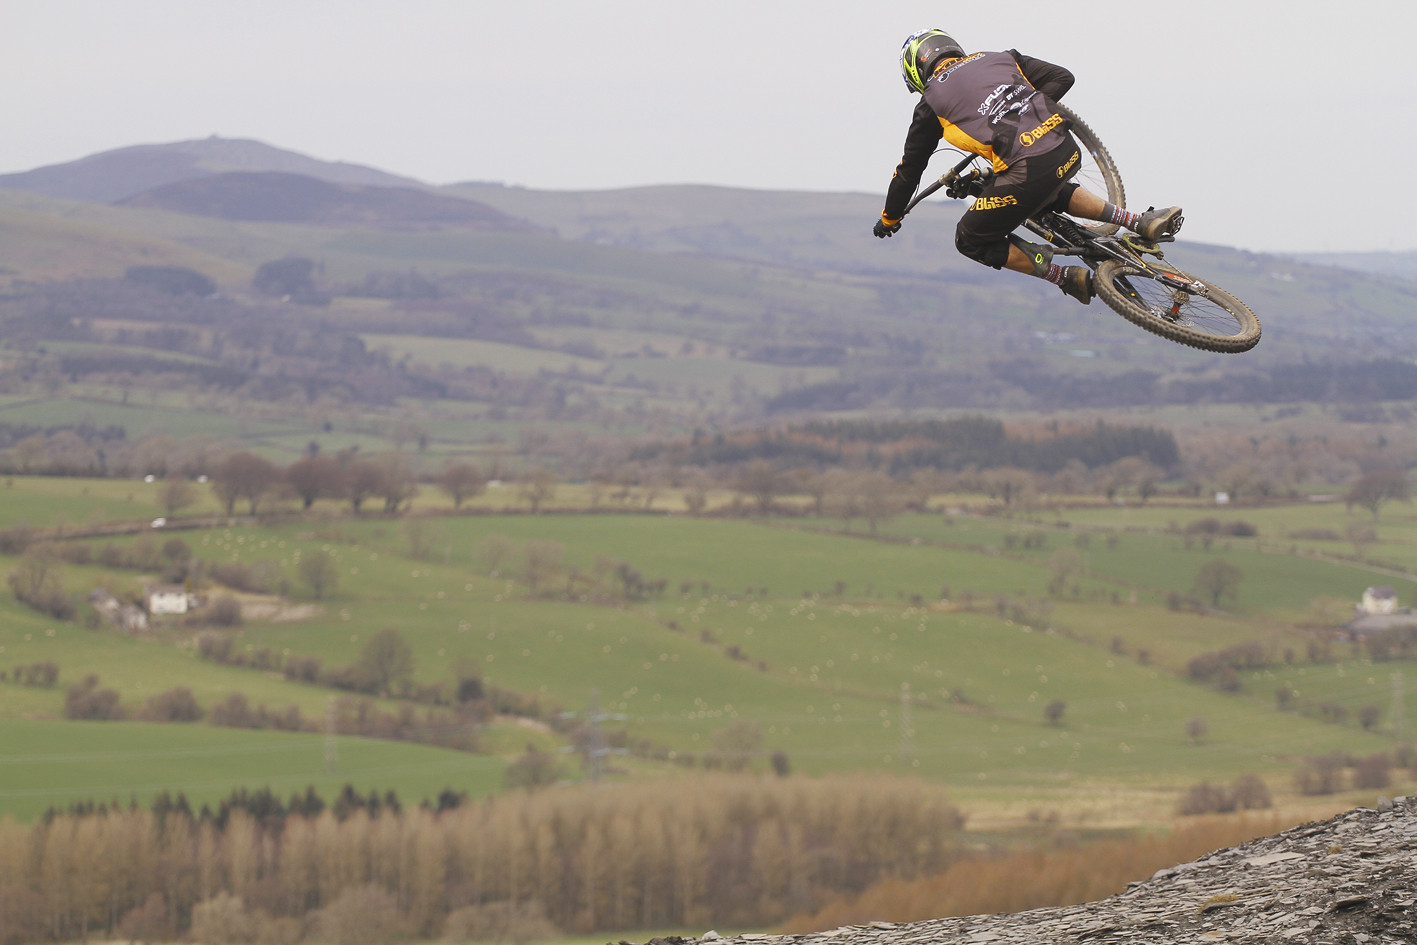 Flying high over North Wales - CaldwellVisuals - Mountain Biking Pictures - Vital MTB